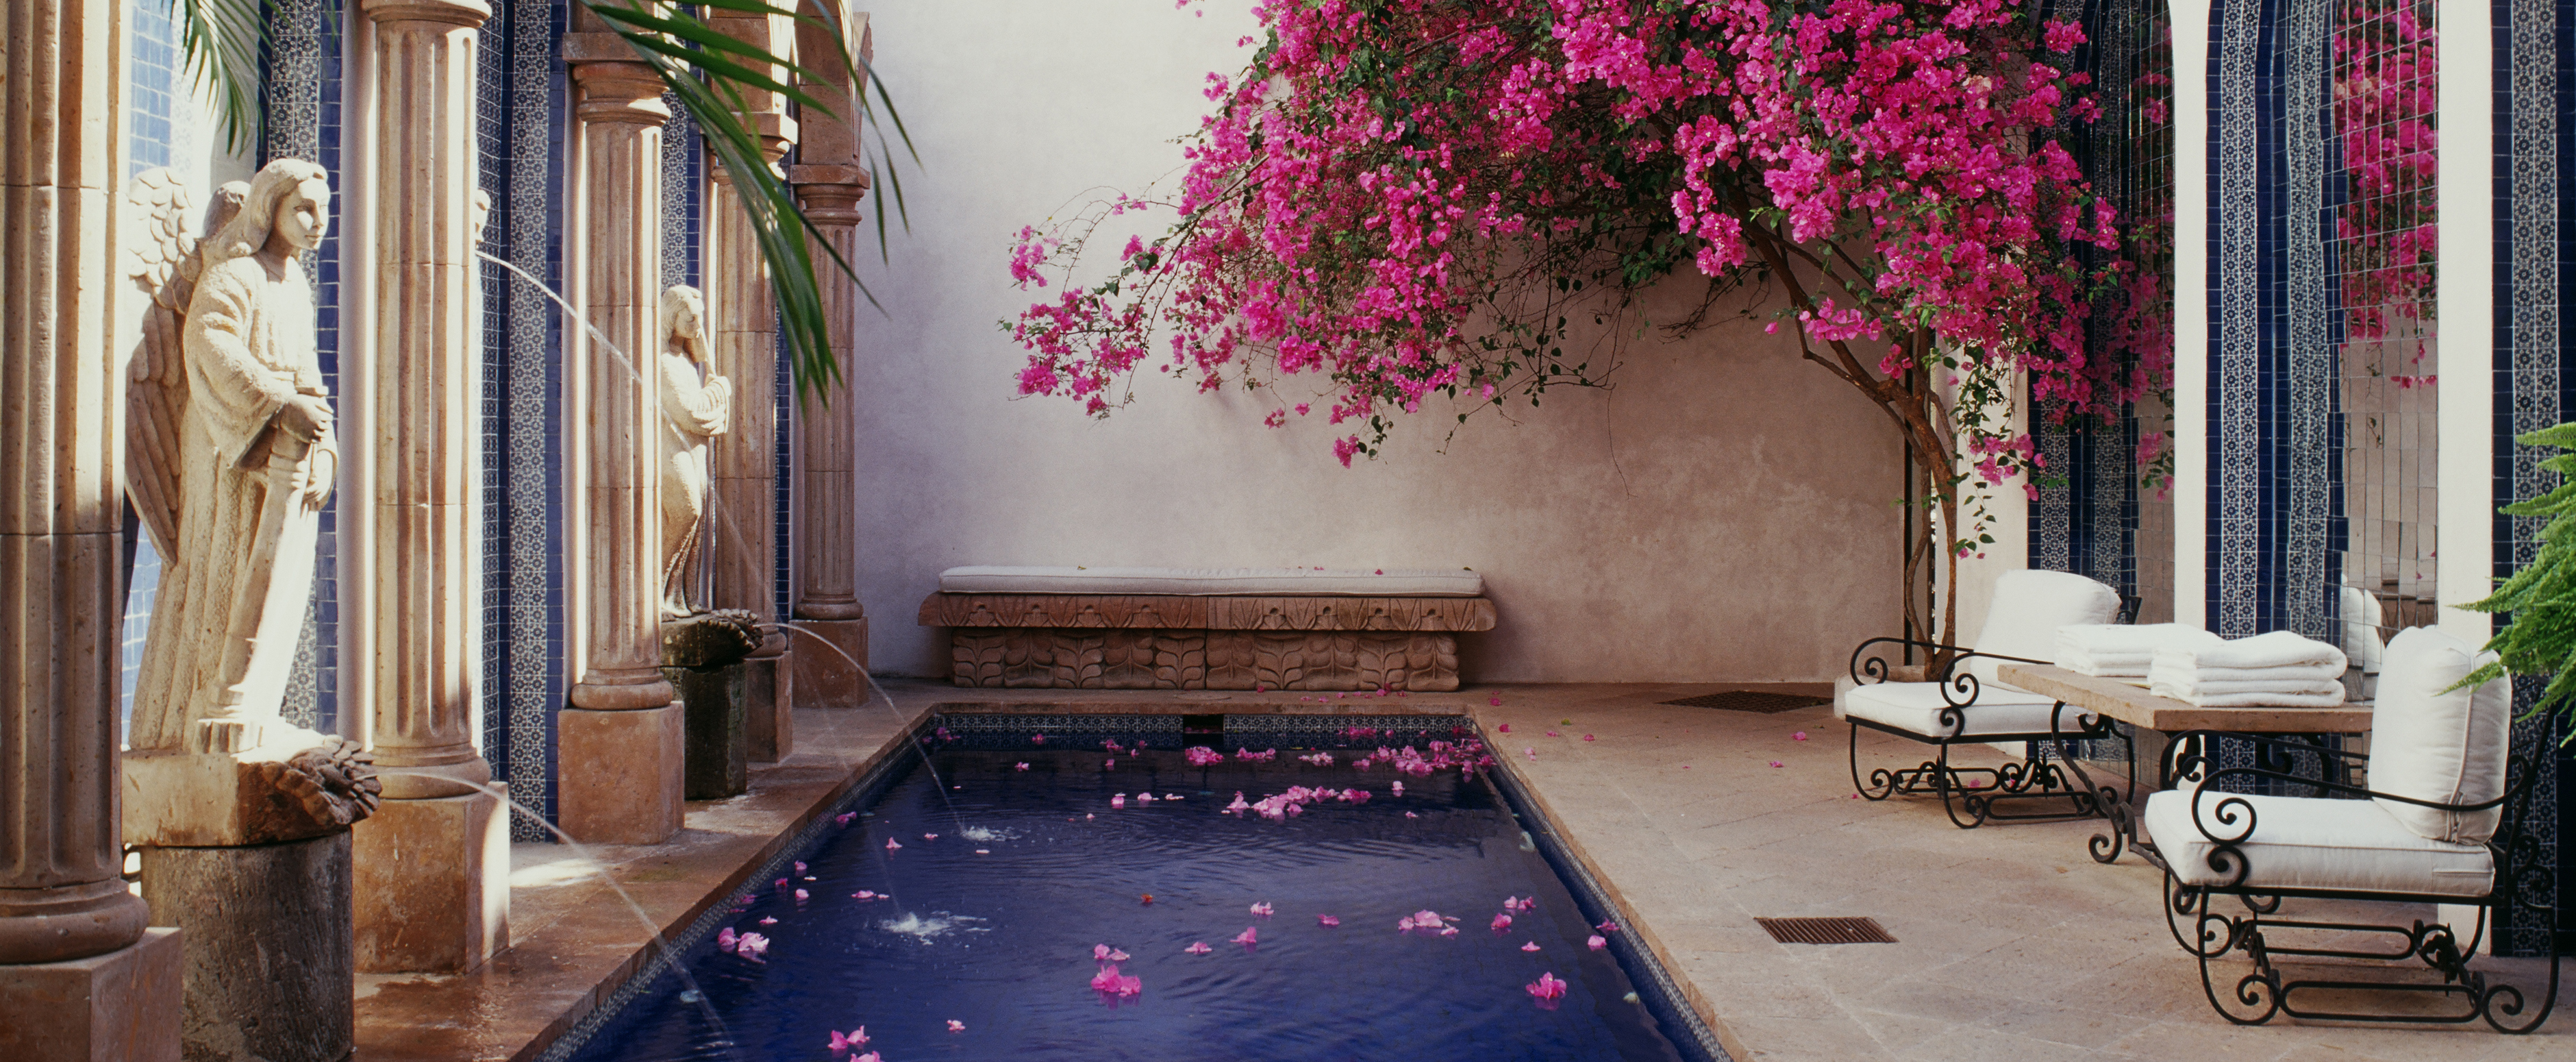 hacienda-pool-courtyard